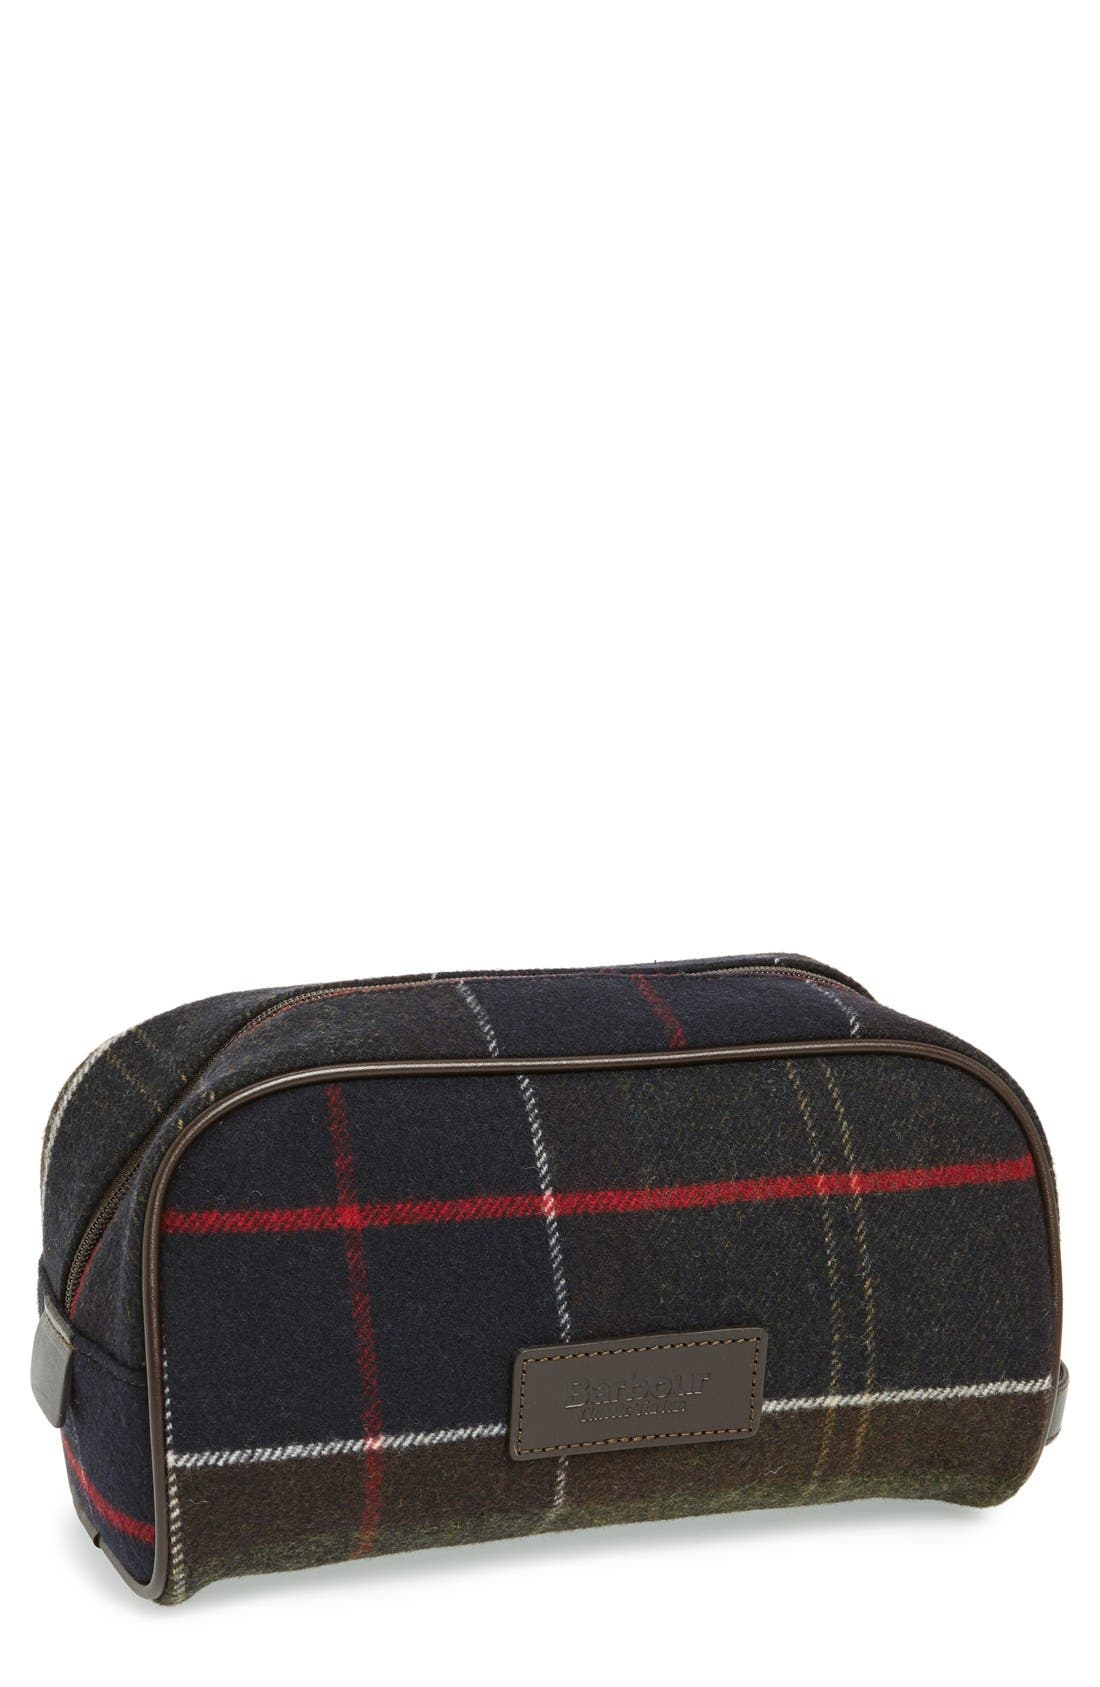 Barbour Tartan Travel Kit